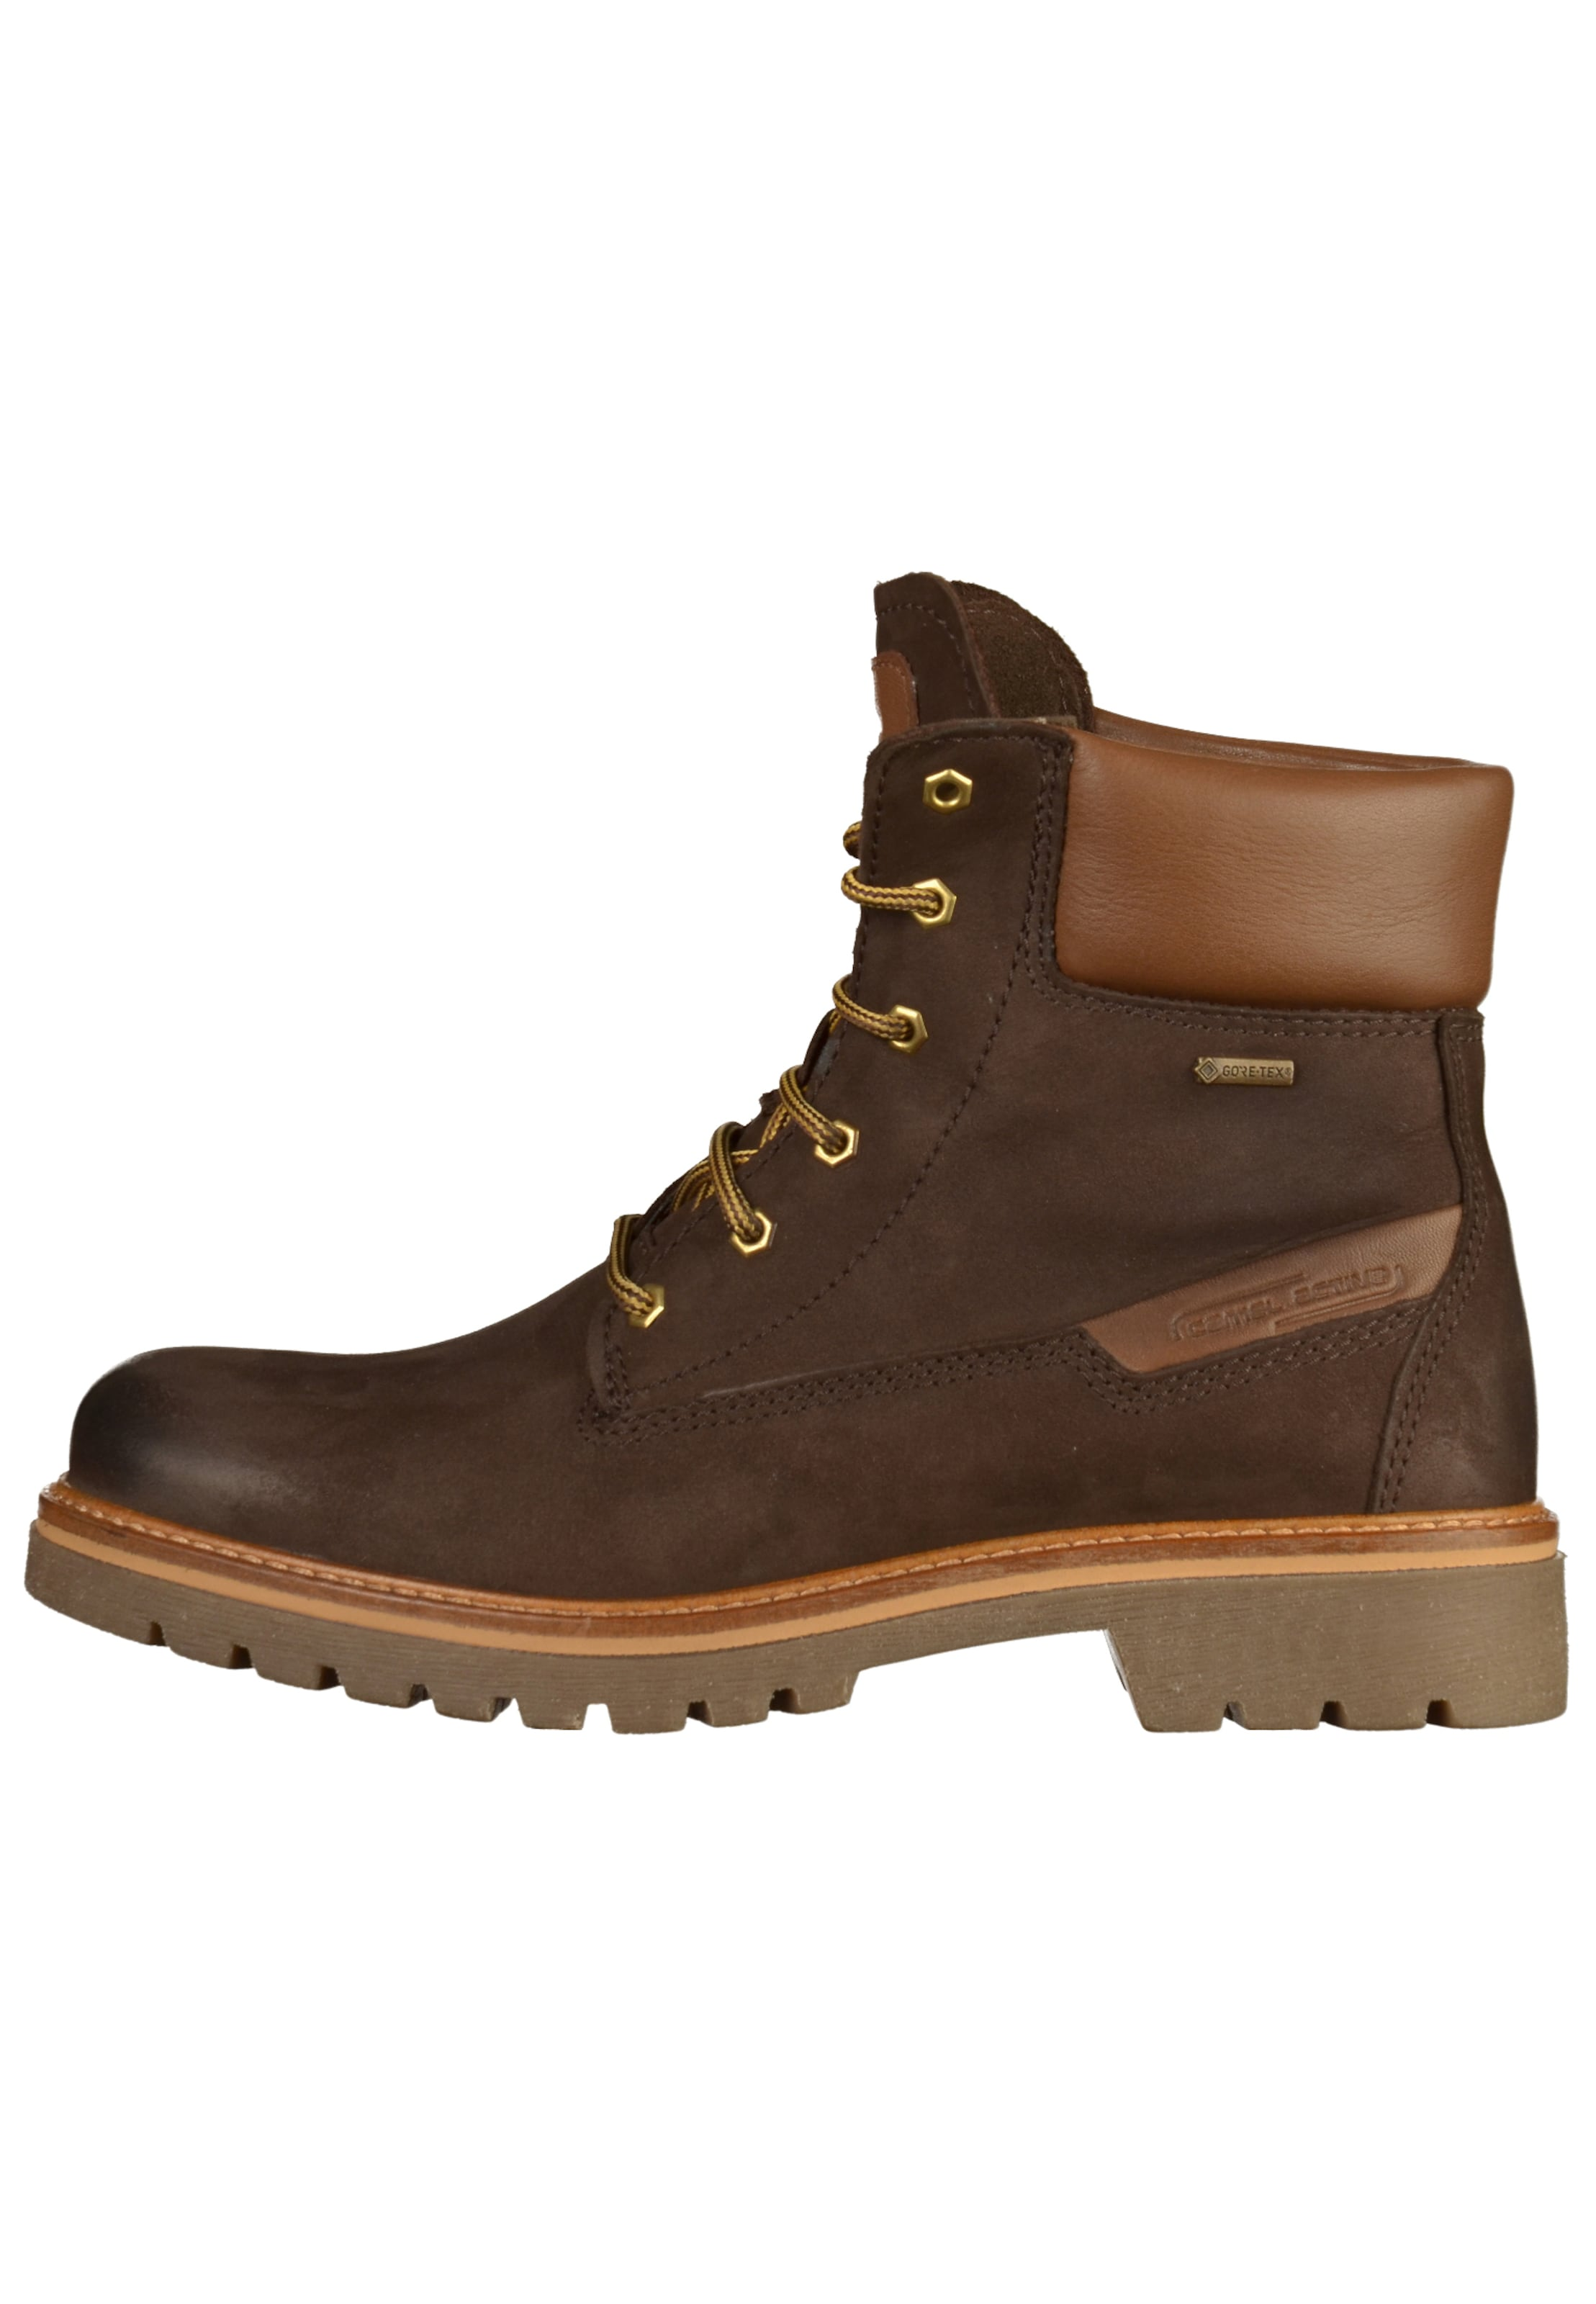 Braun Stiefelette Active Active In Camel Stiefelette In Camel 8nkZN0PXOw